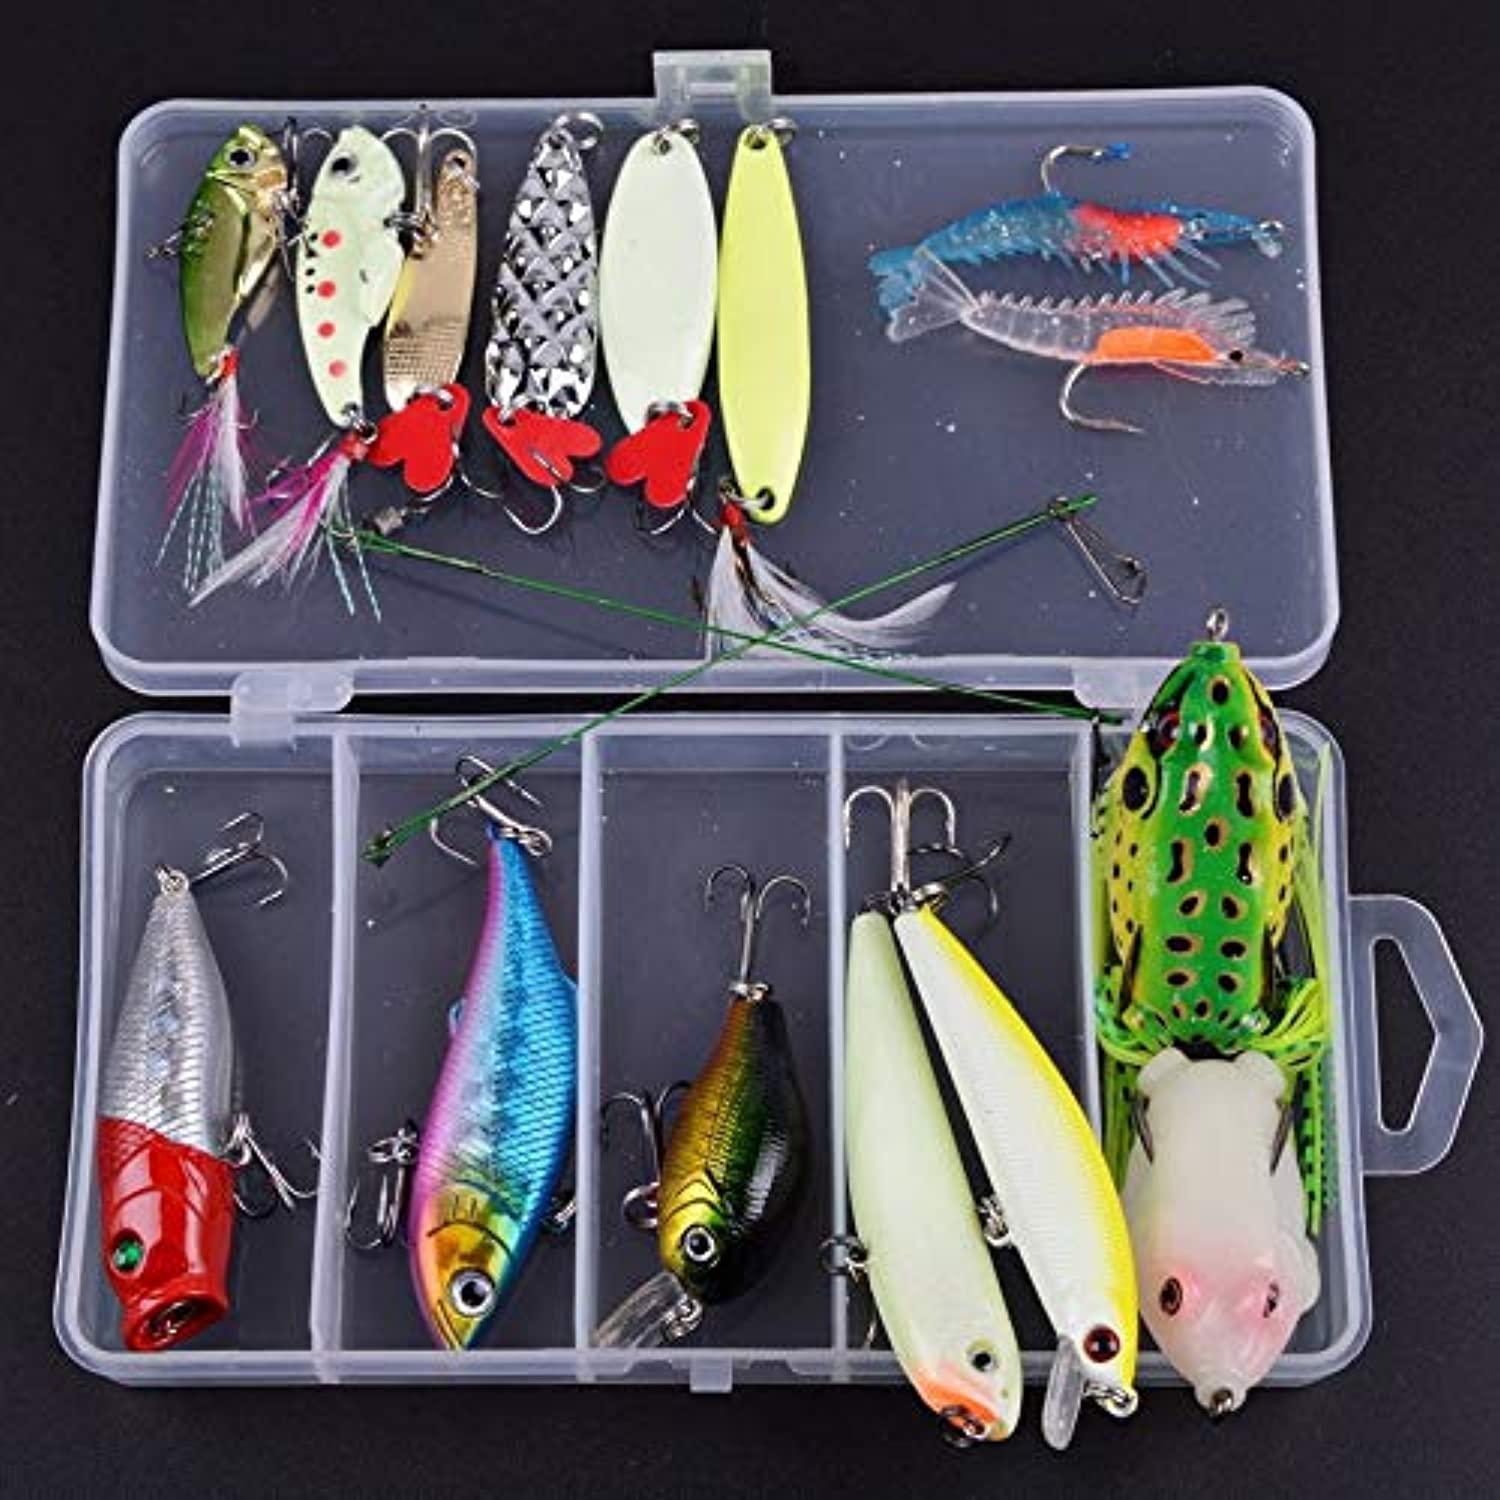 Generic Fishing Lure Kit Hard Soft Lures Frog Metal Lures Sets Soft Bait Fishing Lure Accessory with Box 3D Luminous Bait Night LS0011 17PCS